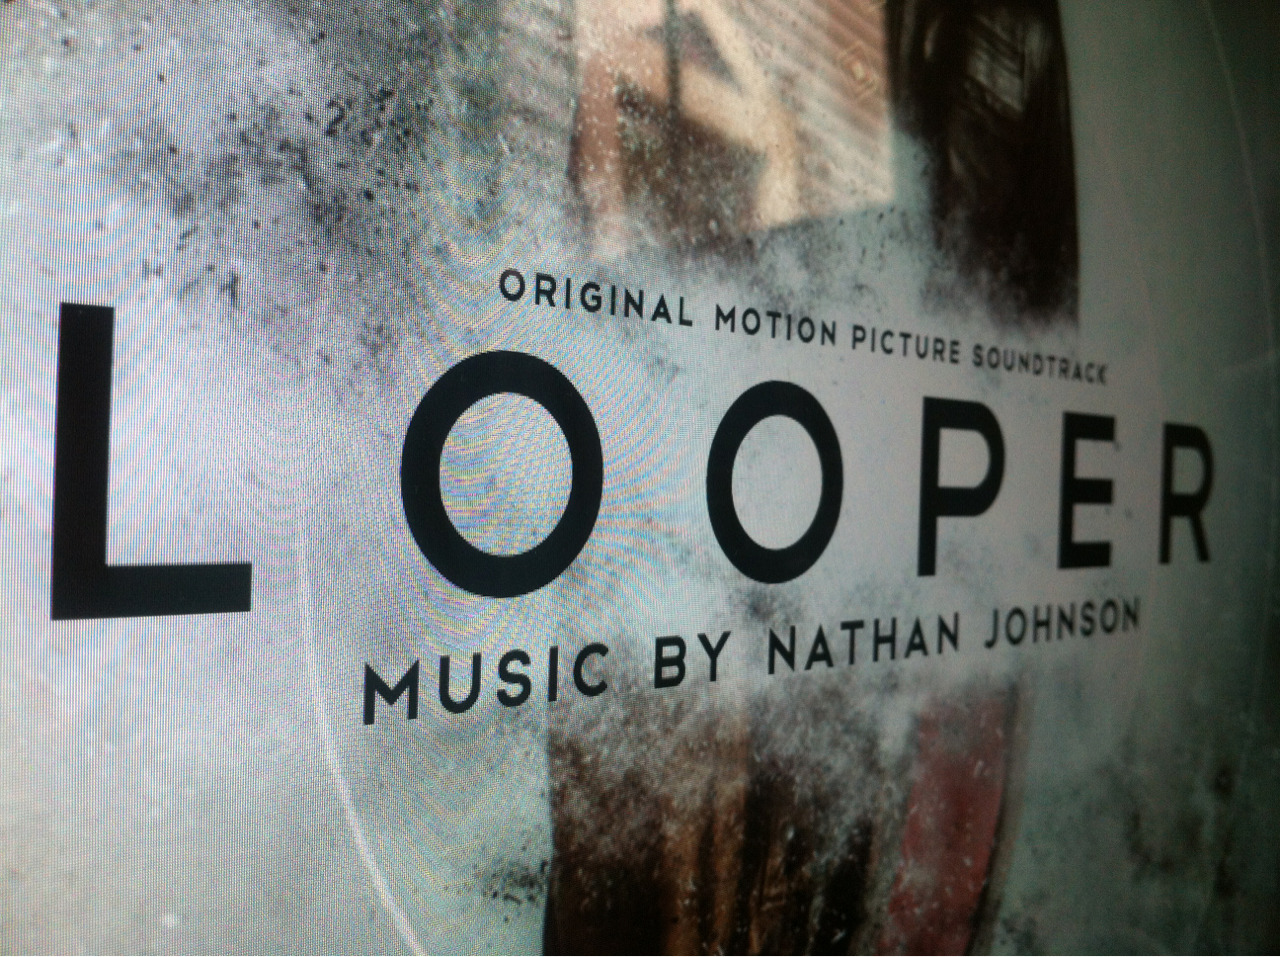 Guess who's finalizing the artwork for the Looper soundtrack?! Damn straight, it's Marke at The Made Shop.